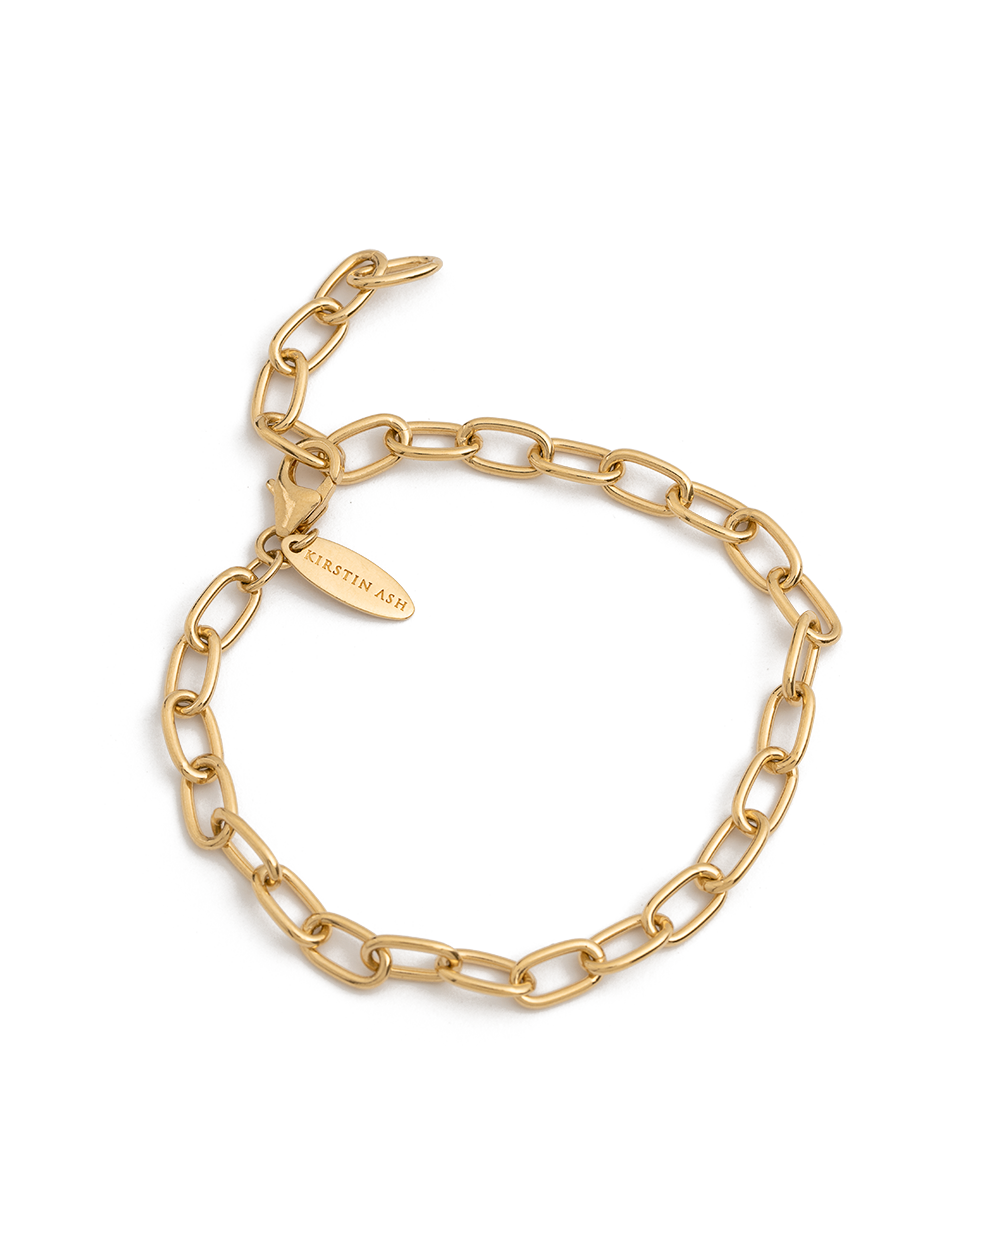 TIDAL CHAIN BRACELET (18K-GOLD-PLATED)